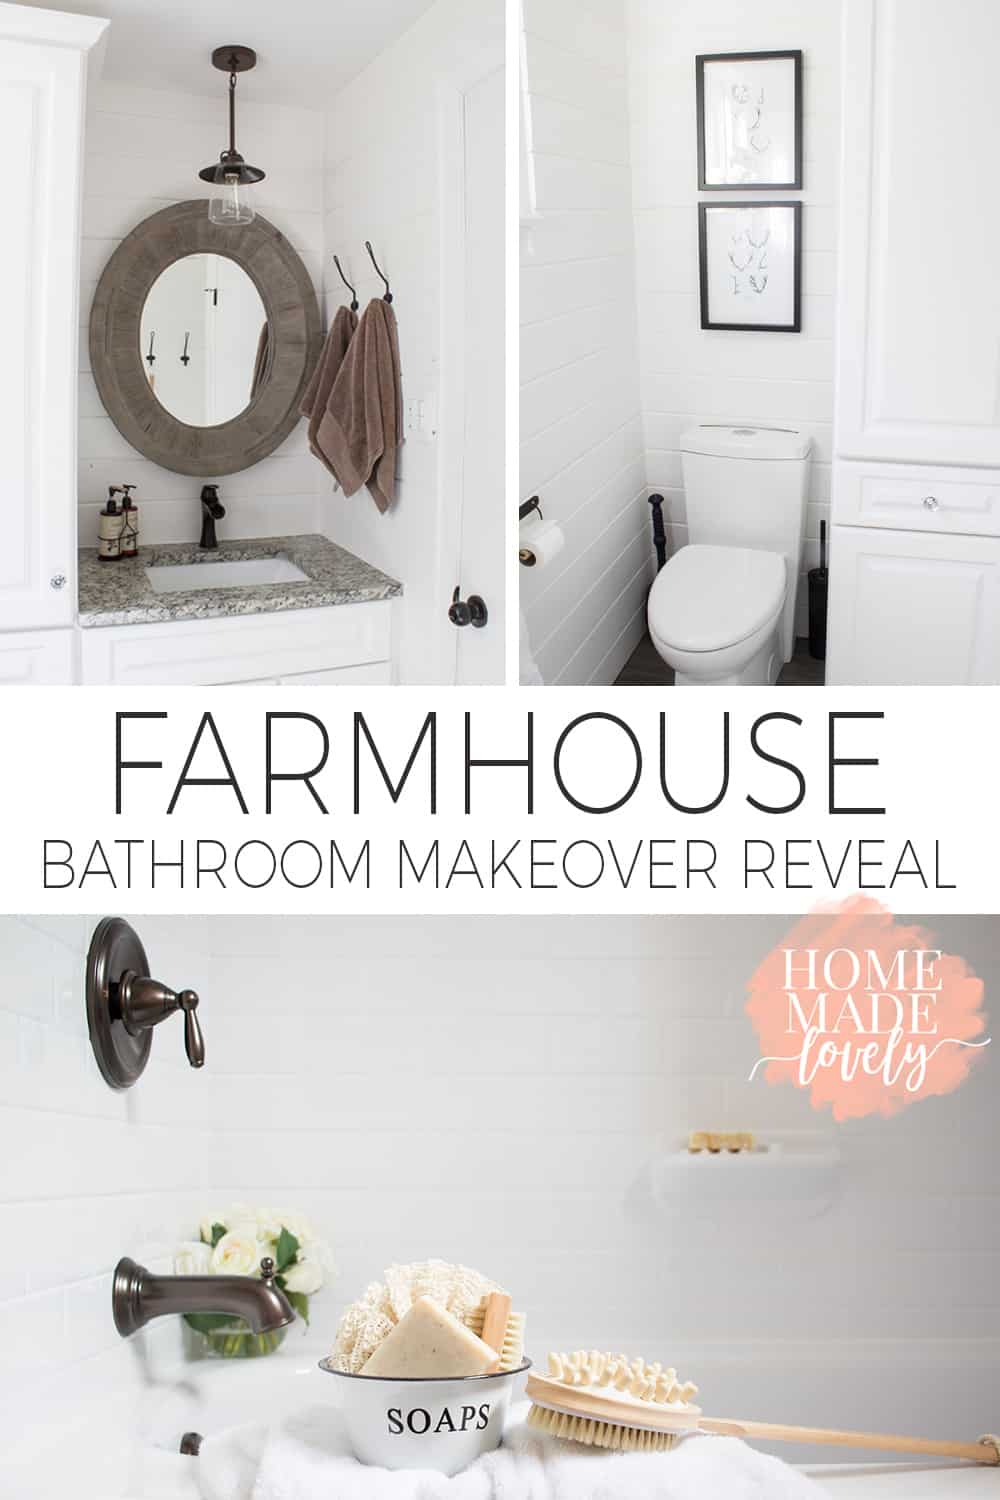 A few months before we moved to this house, we redid the bathroom at our old house. Here is that farmhouse bathroom makeover reveal. Better late than never, right?!